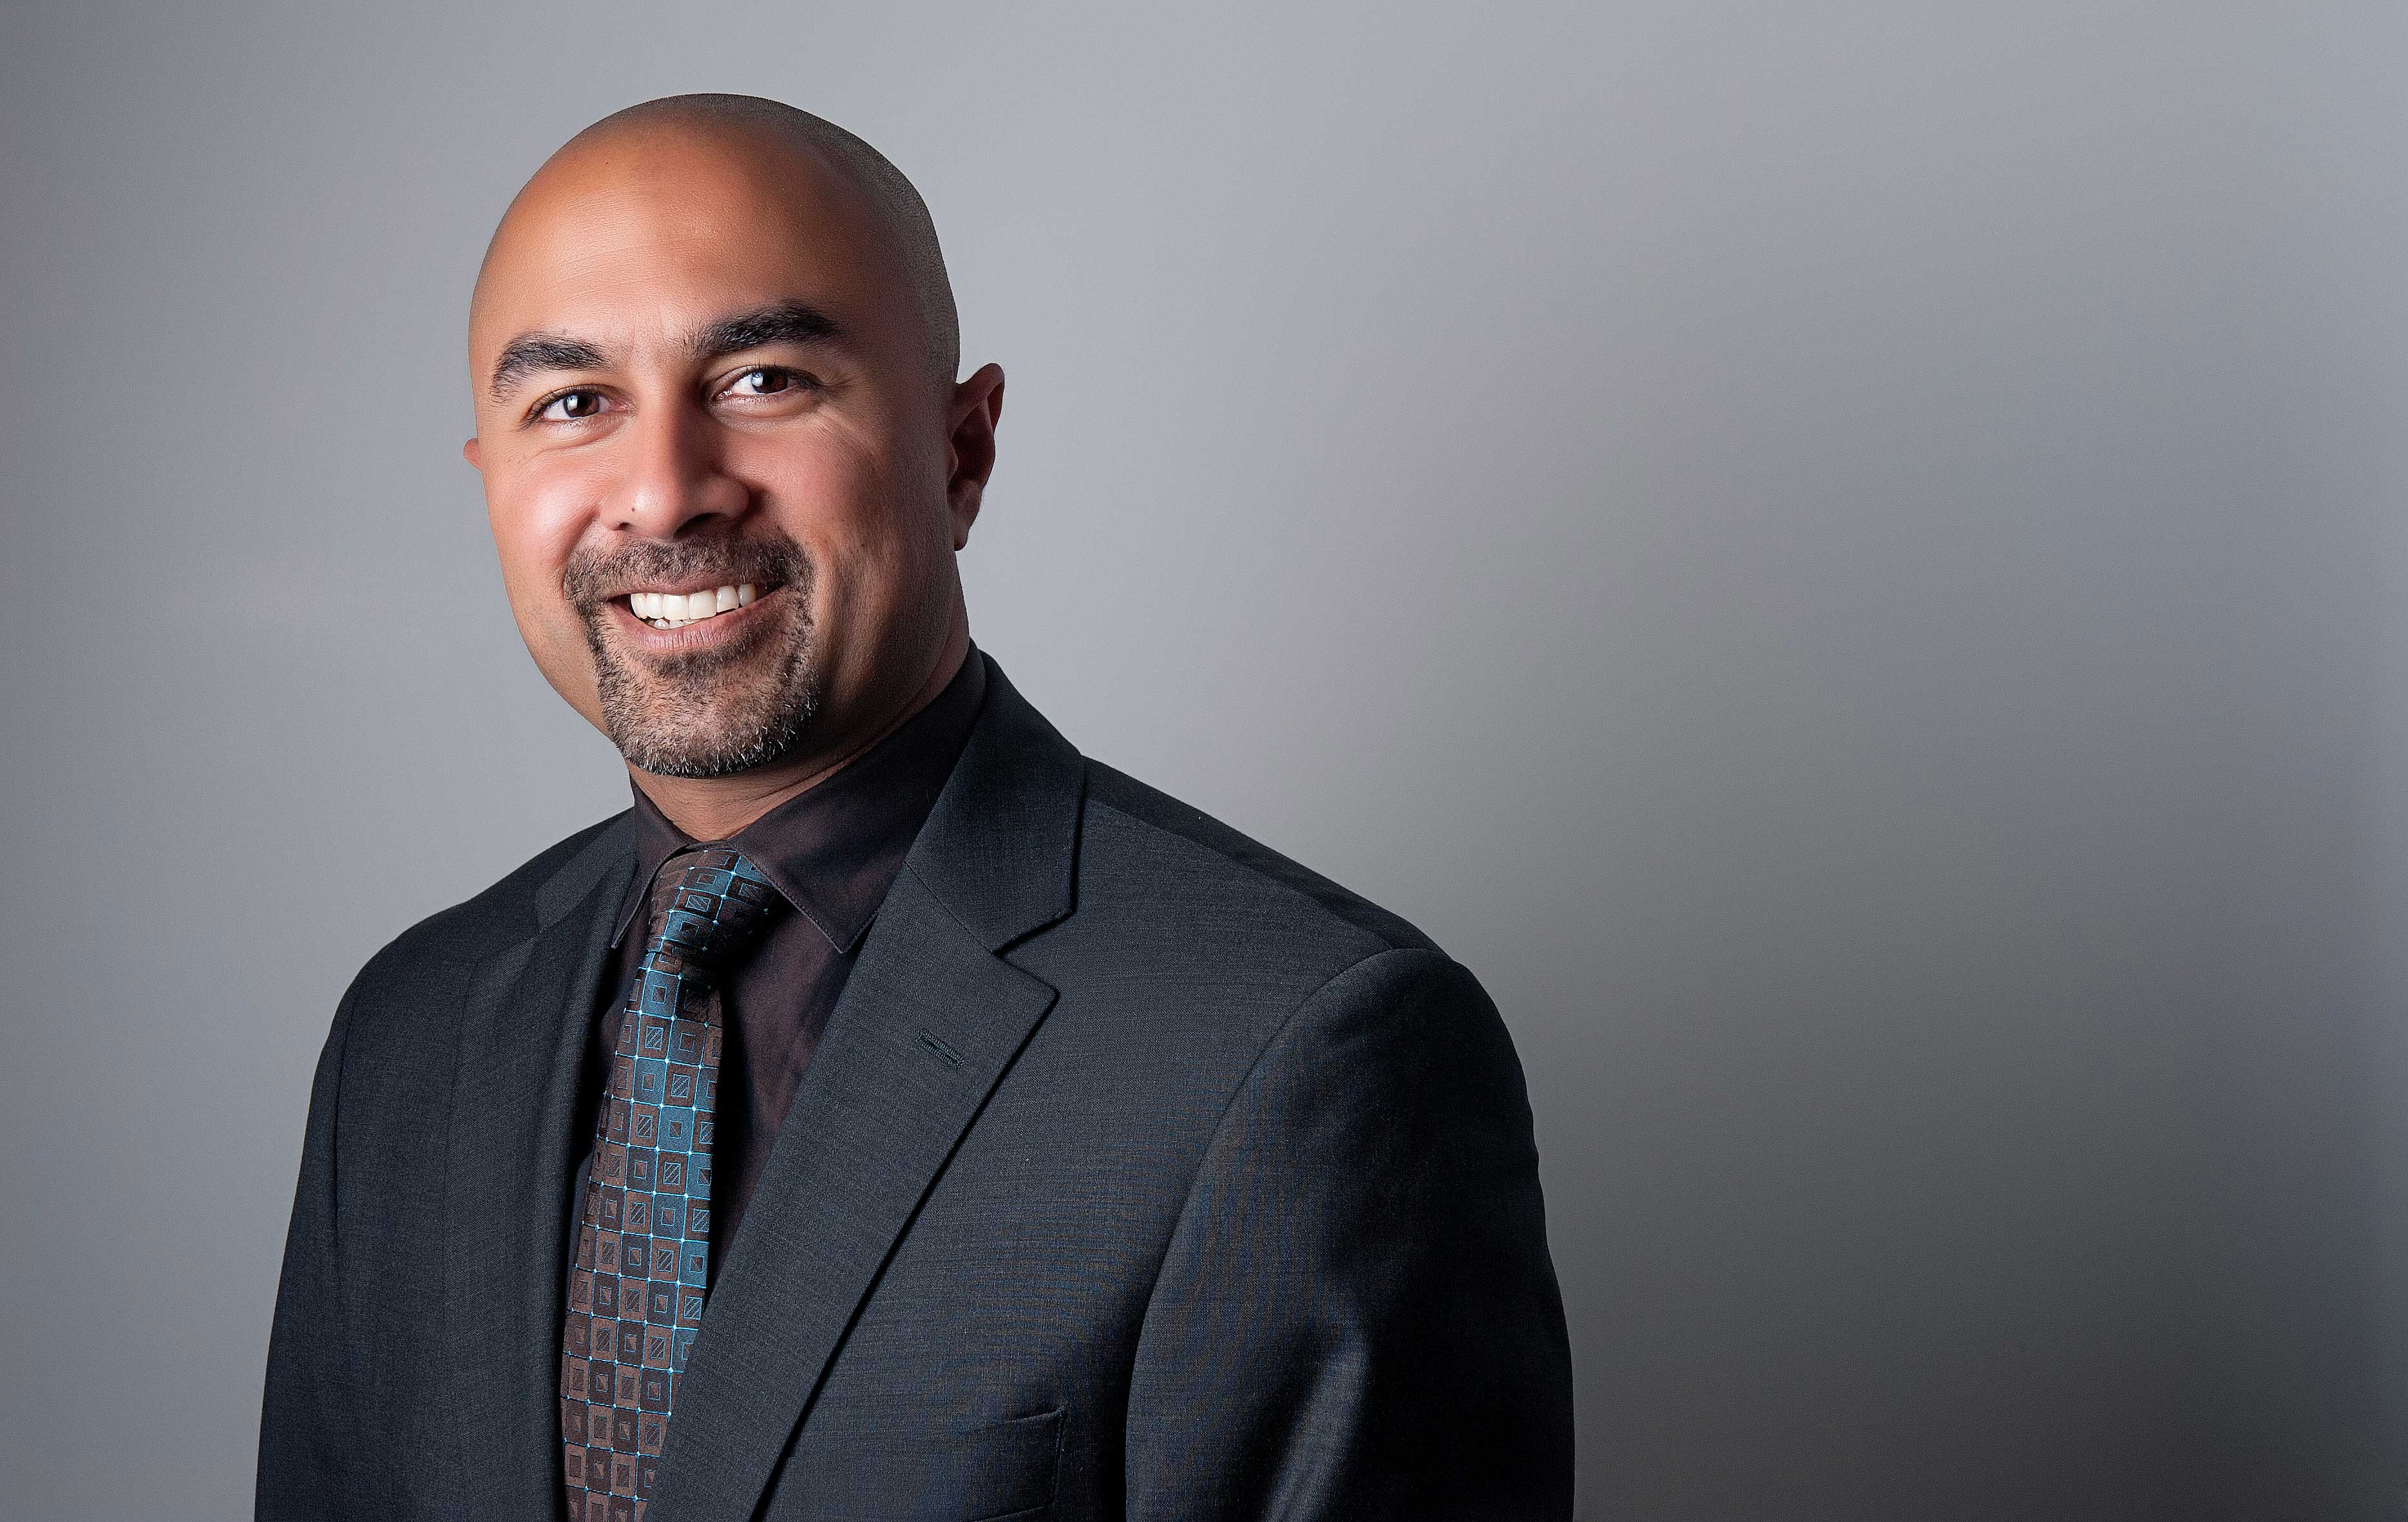 Dr. Amit Featured in Arizona Republic Article